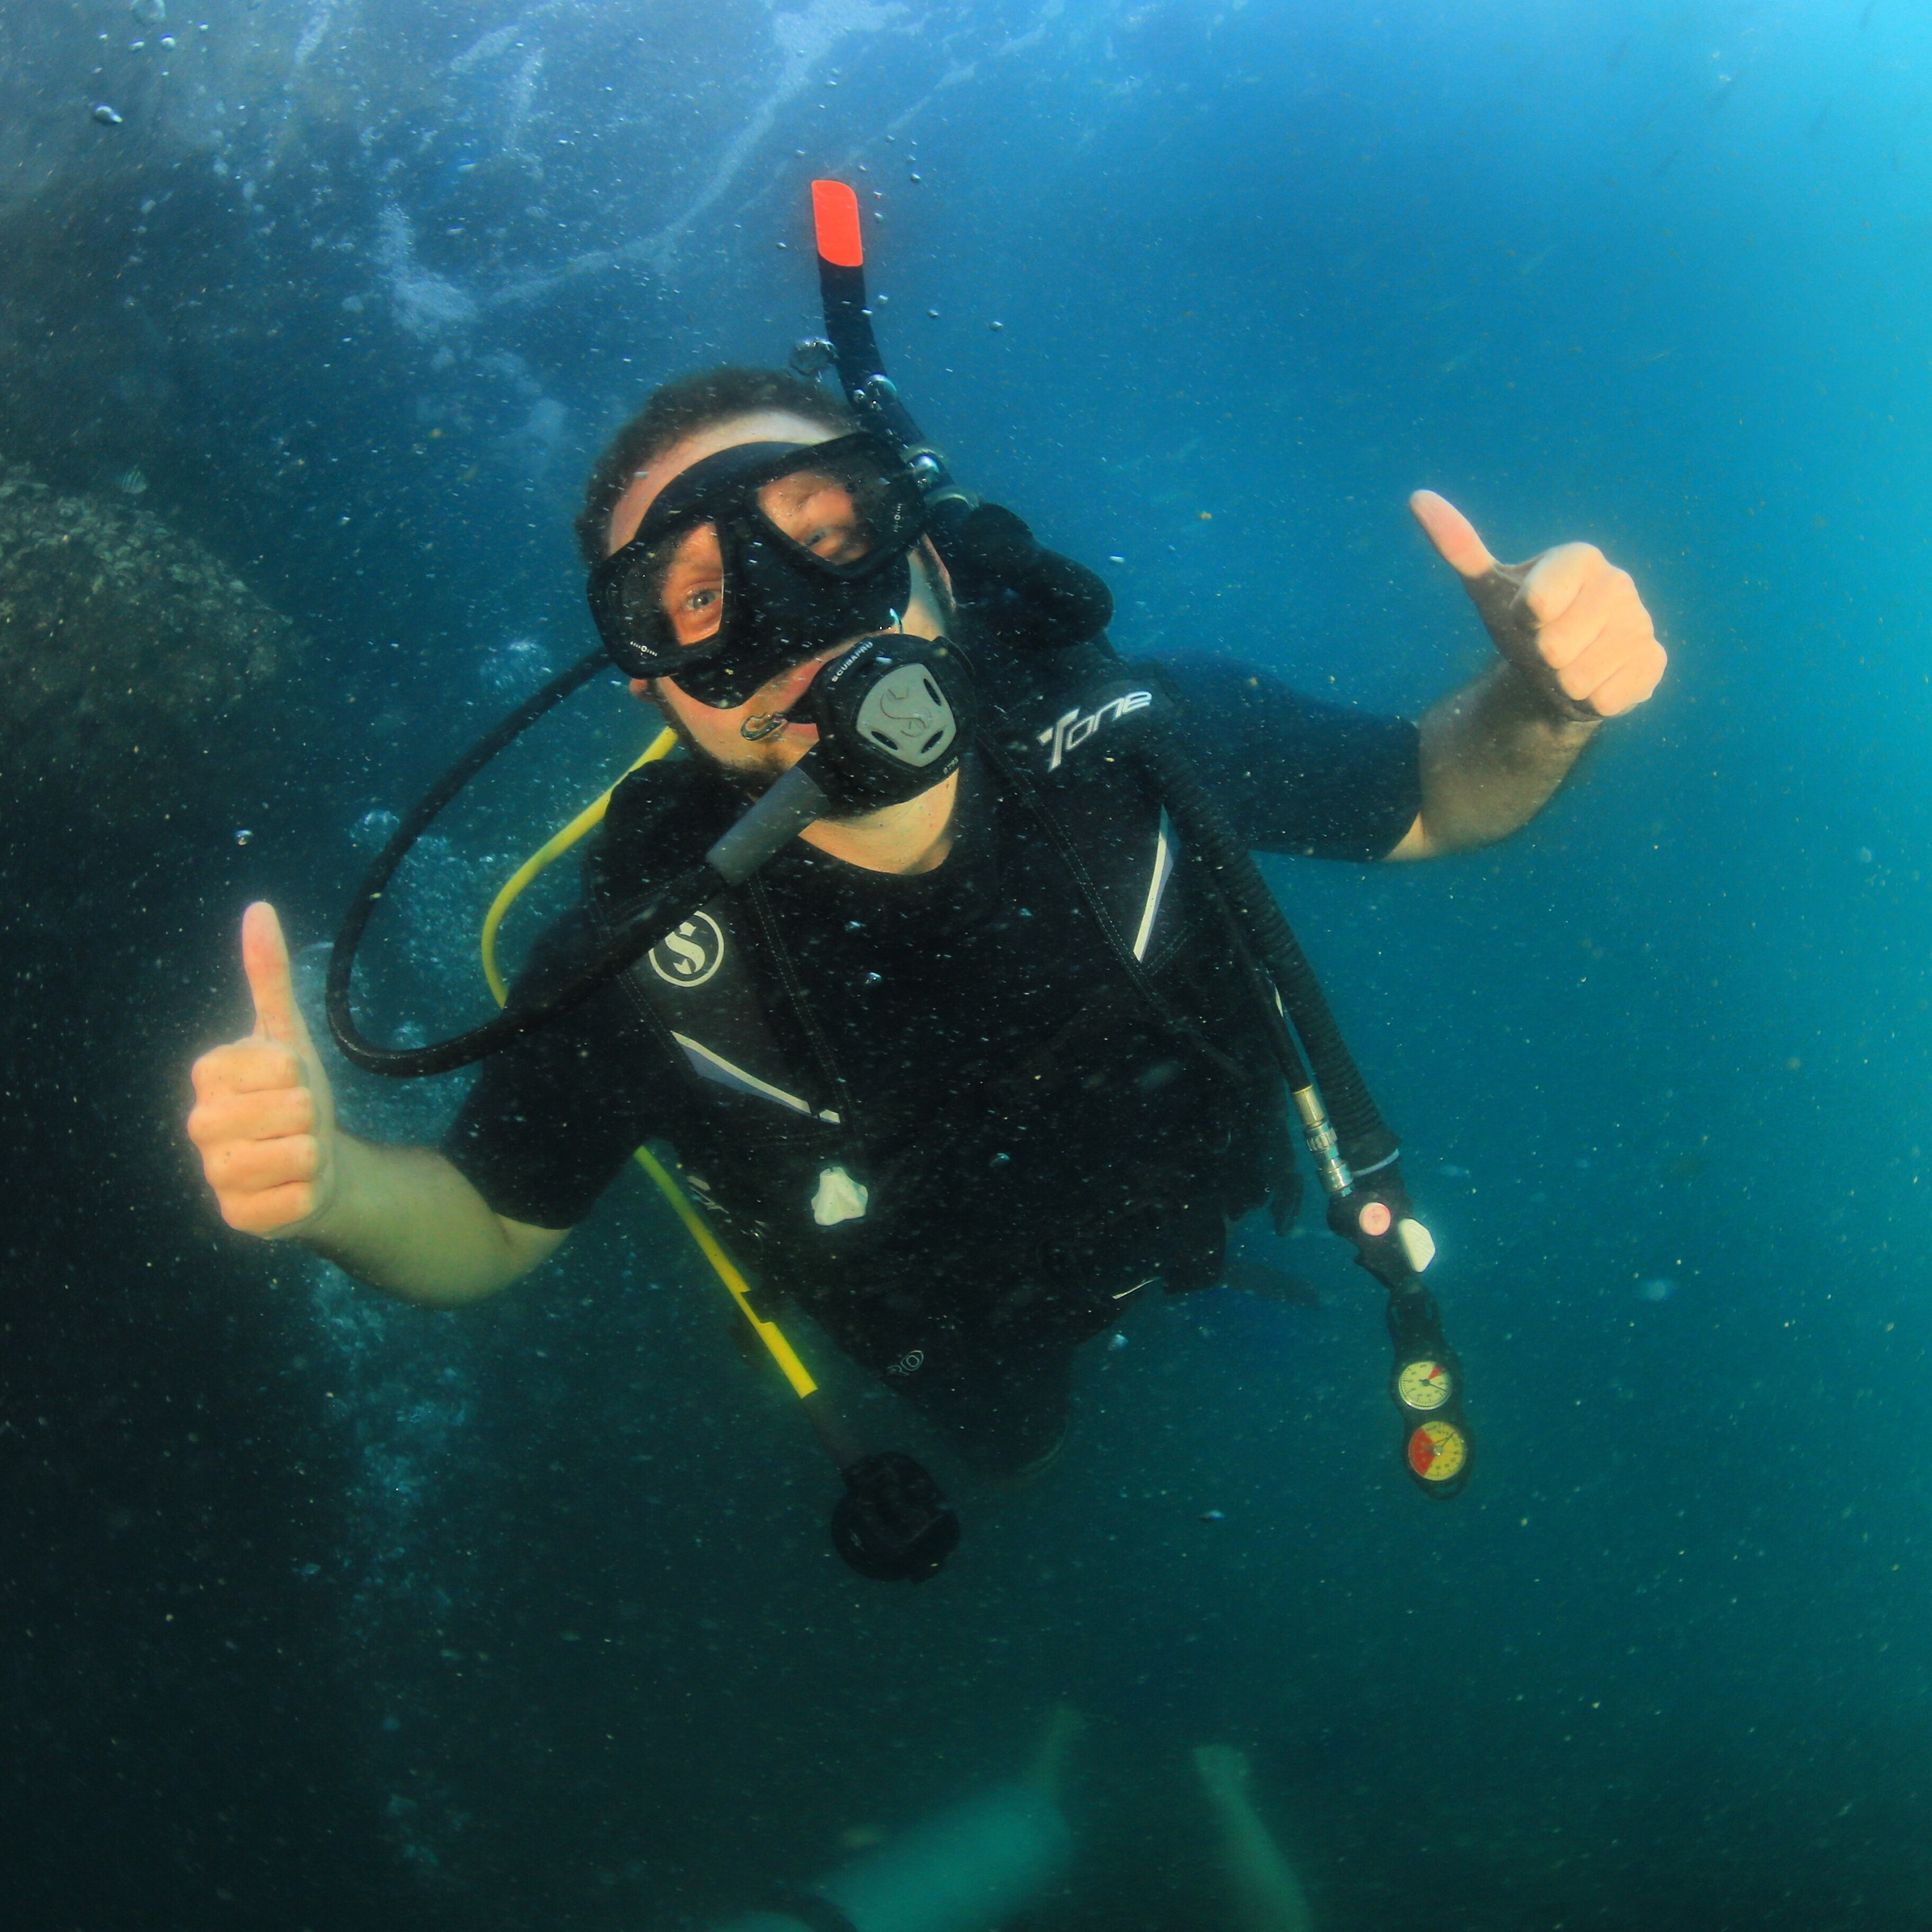 Photo Credit:Nicolas Voisin  Photo taken during my Open Water certification dive with Easy Divers in Koh Samui, Thailand